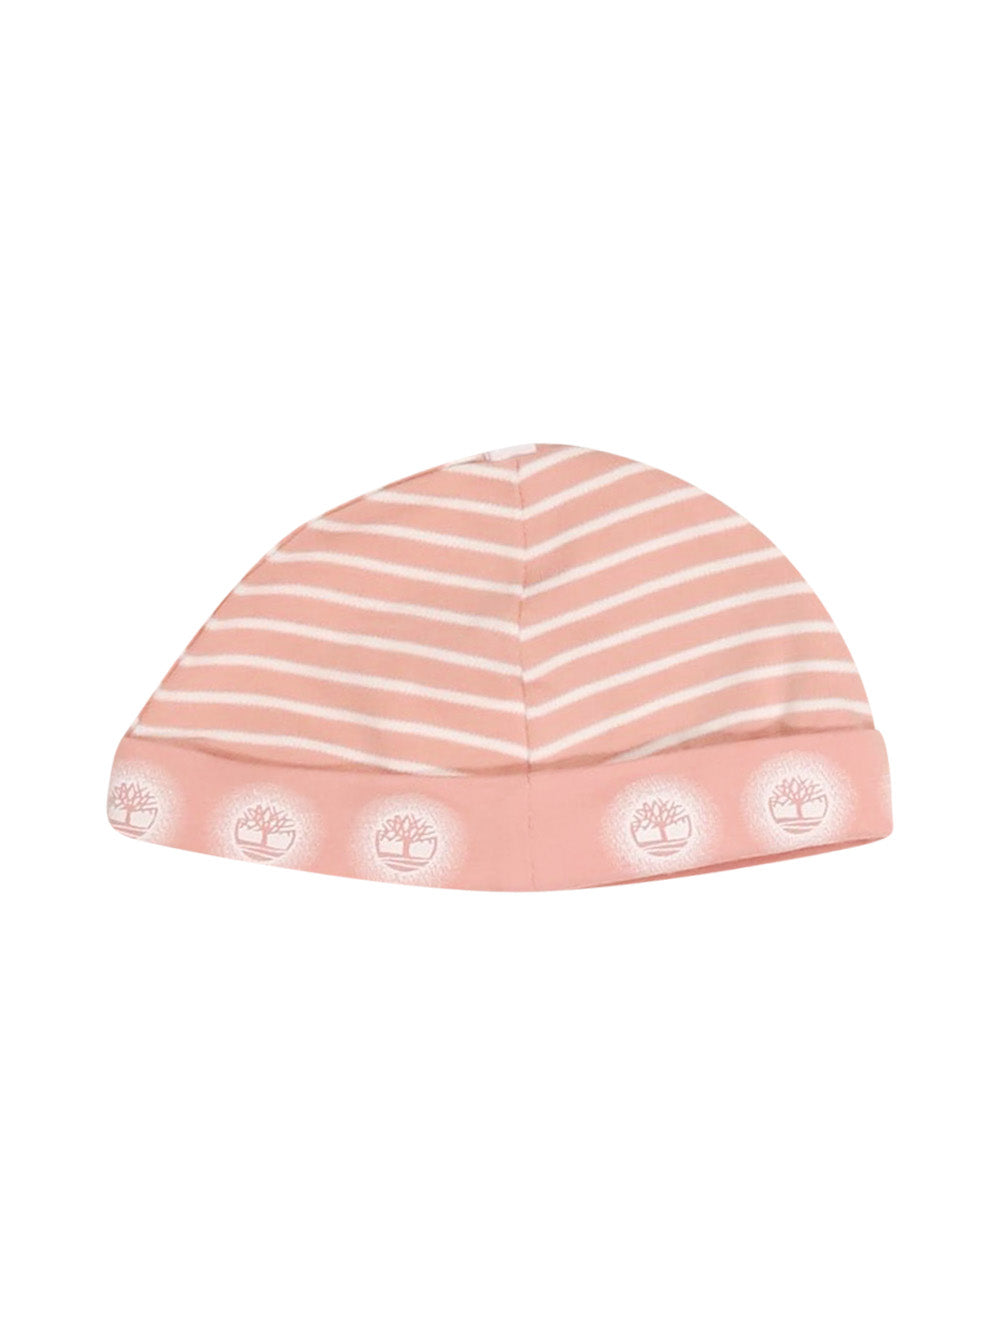 Front photo of Preloved Timberland Pink Girl's hat - size 3-6 mths